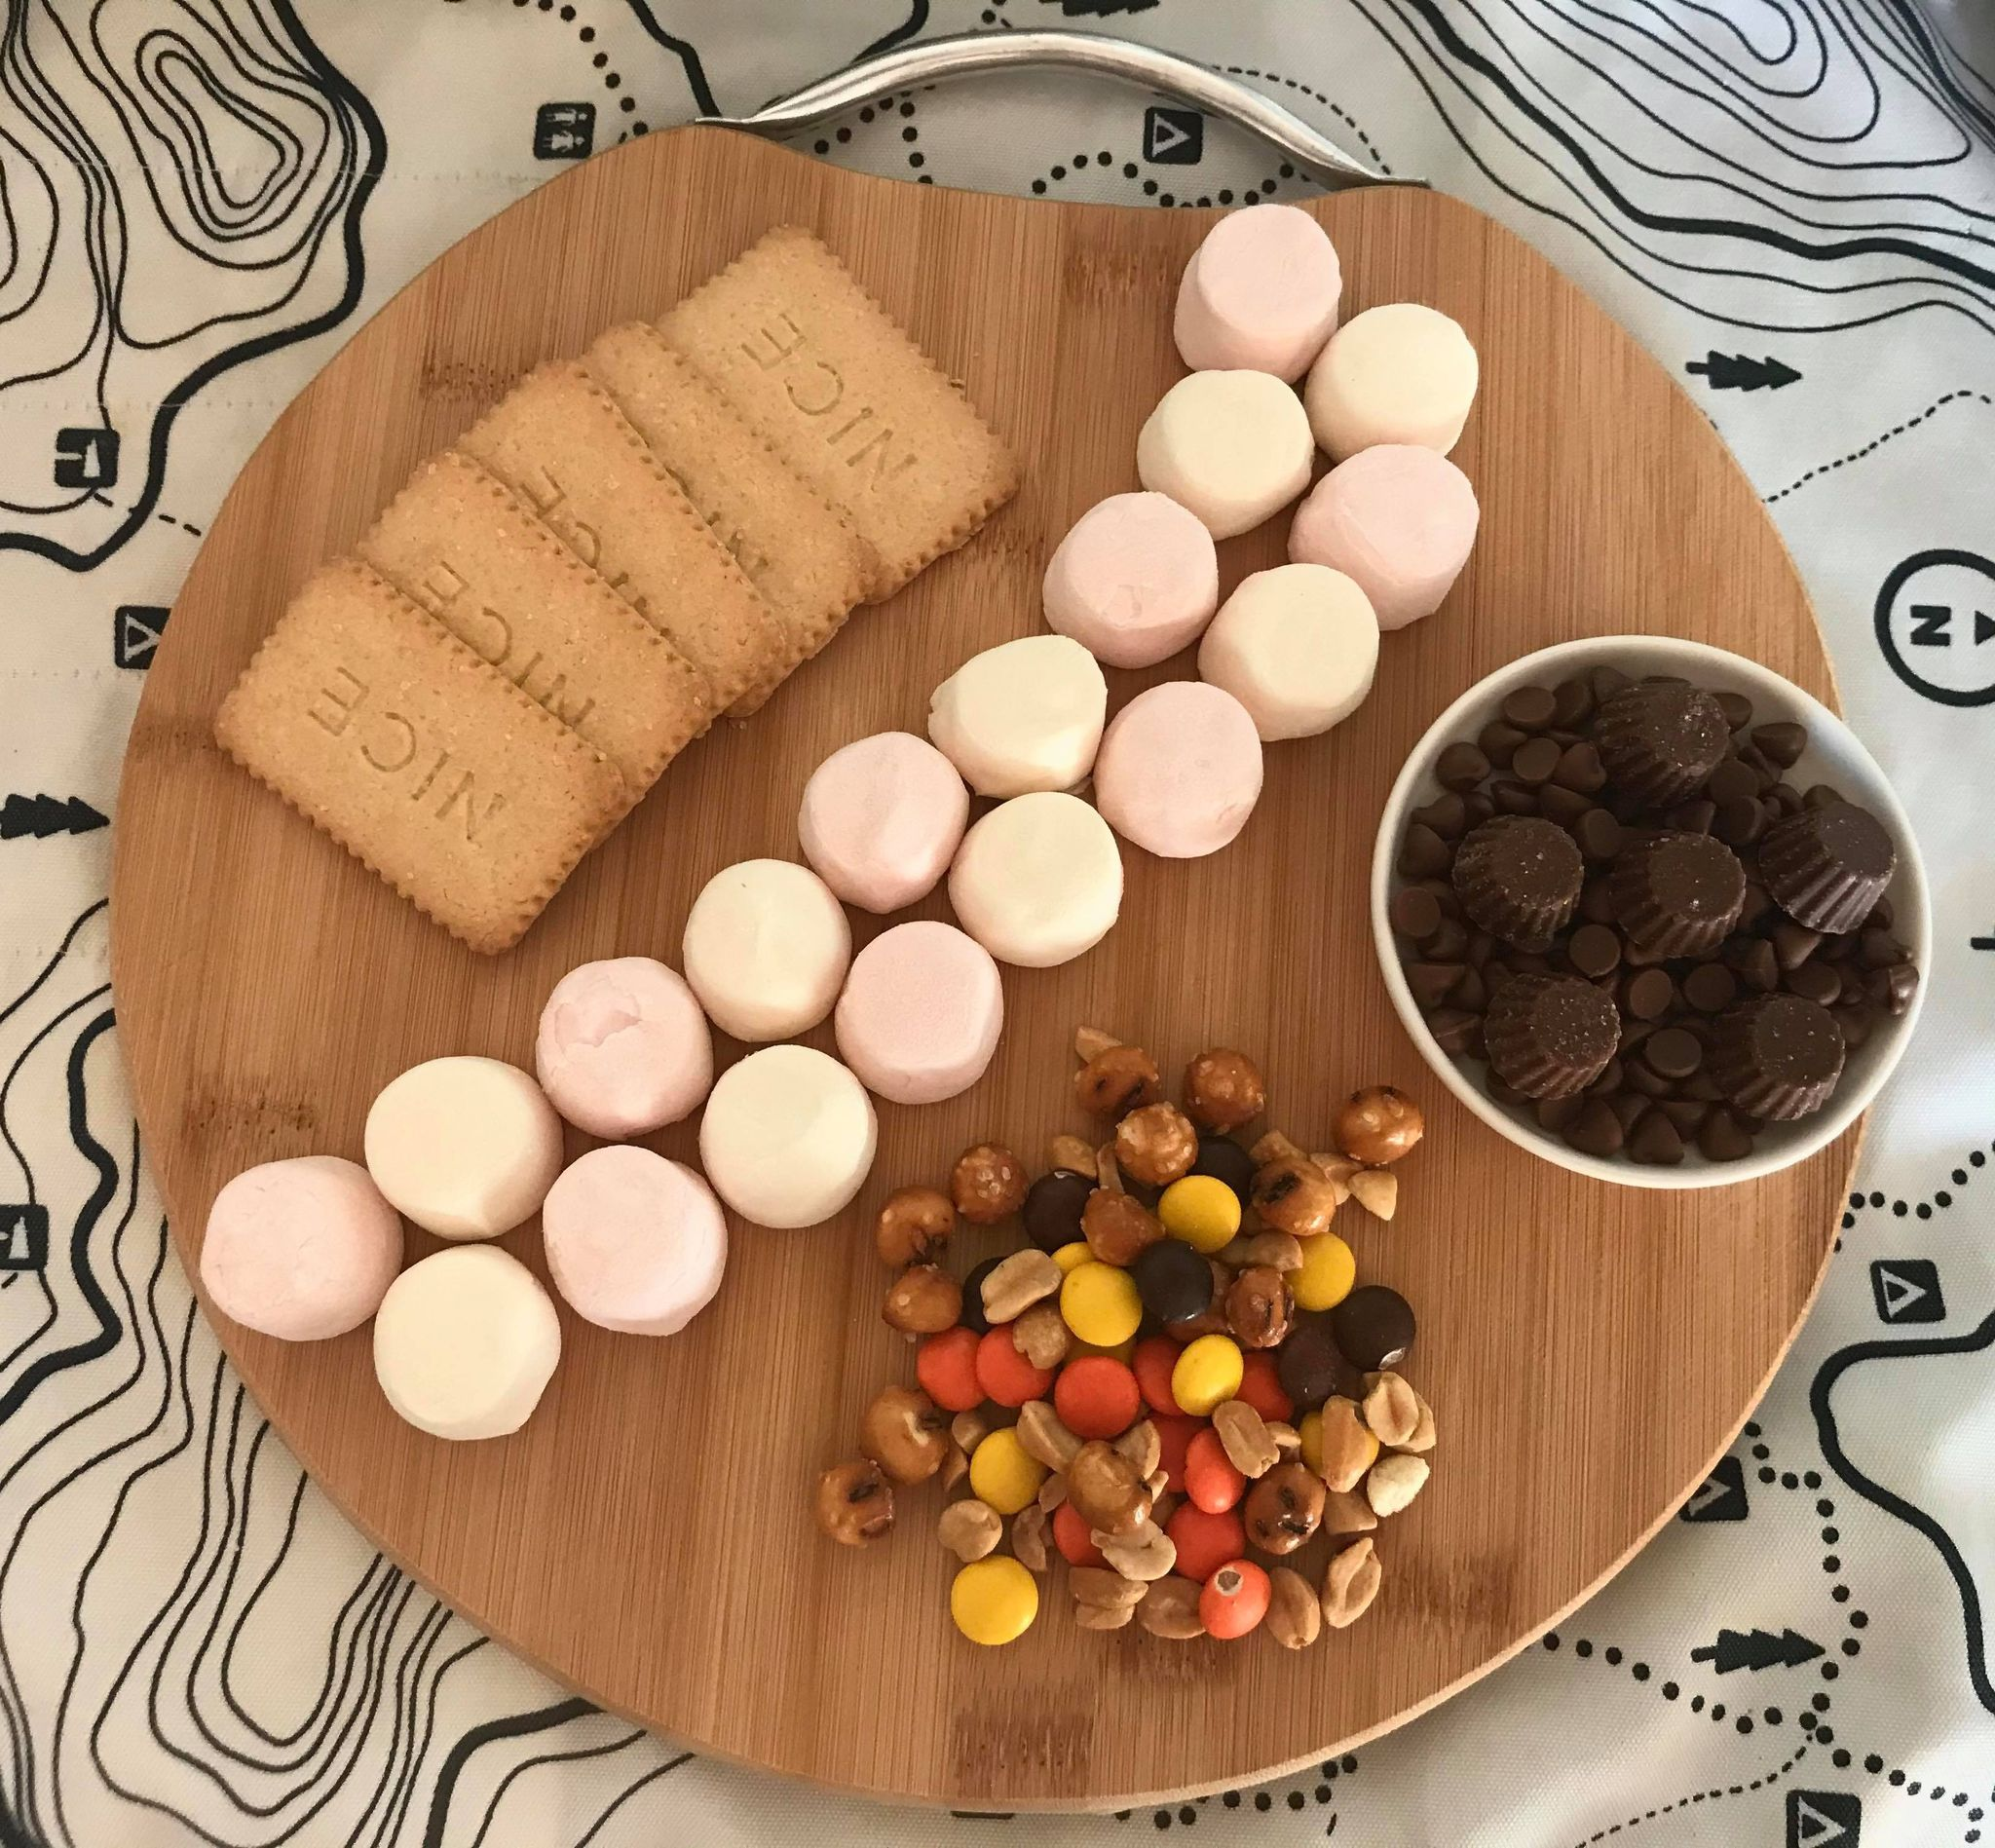 a round wooden board with biscuits, marshmallows, small candies, and chocolate dipping sauce arranged on it